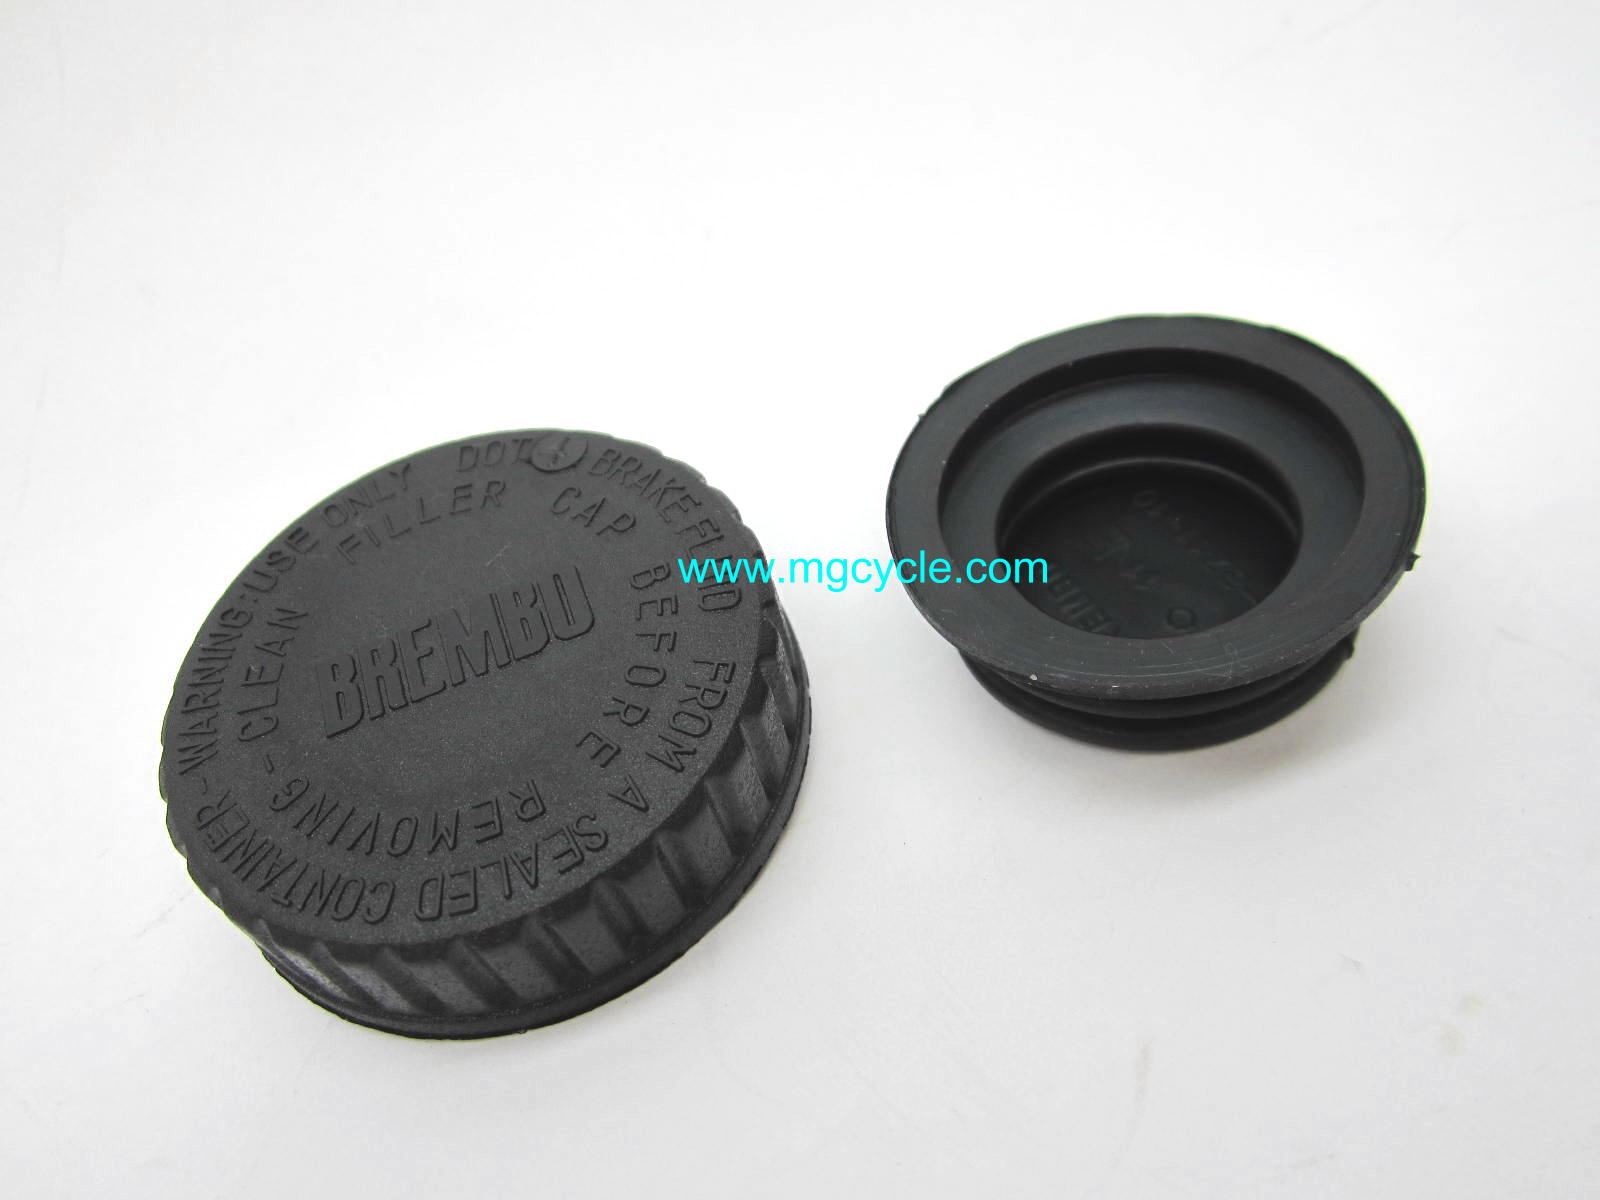 Brembo master cylinder cap and bellows for 12mm round masters